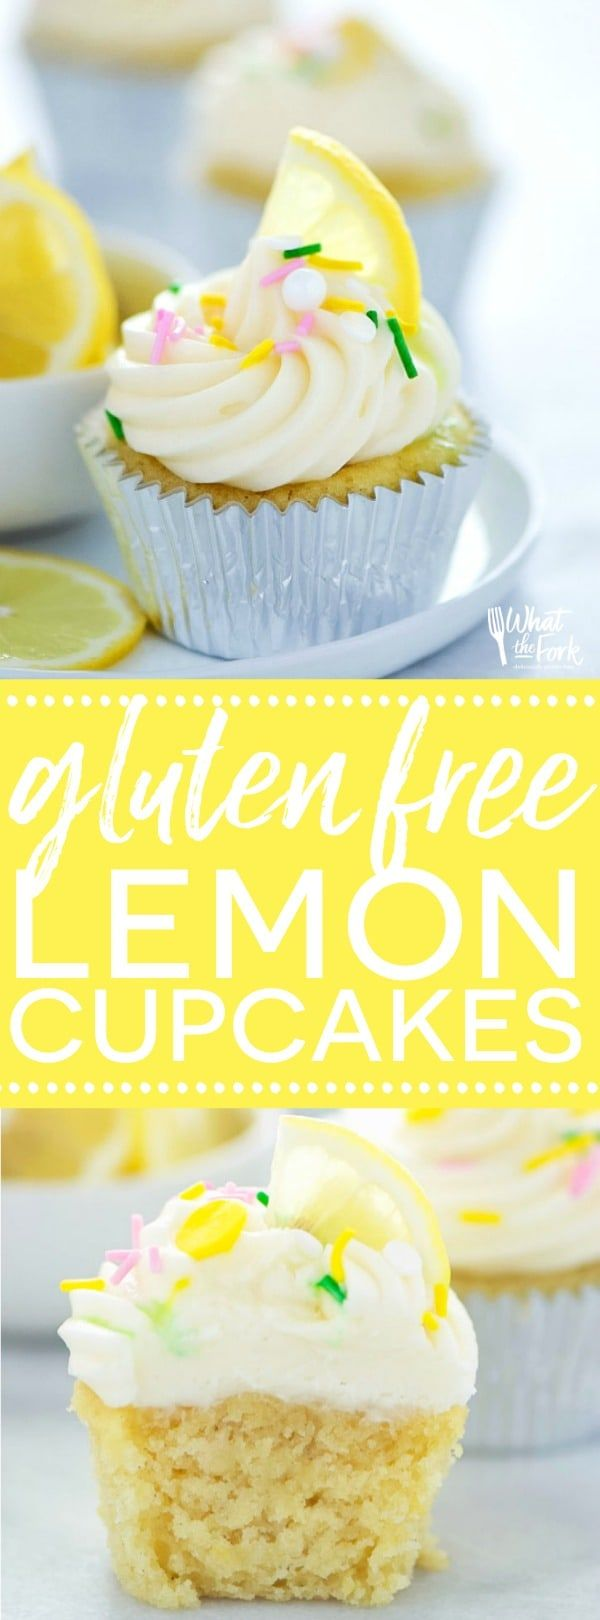 The Best Gluten Free Lemon Cupcakes and Giveaway (Cheese Muffins Gluten Free)